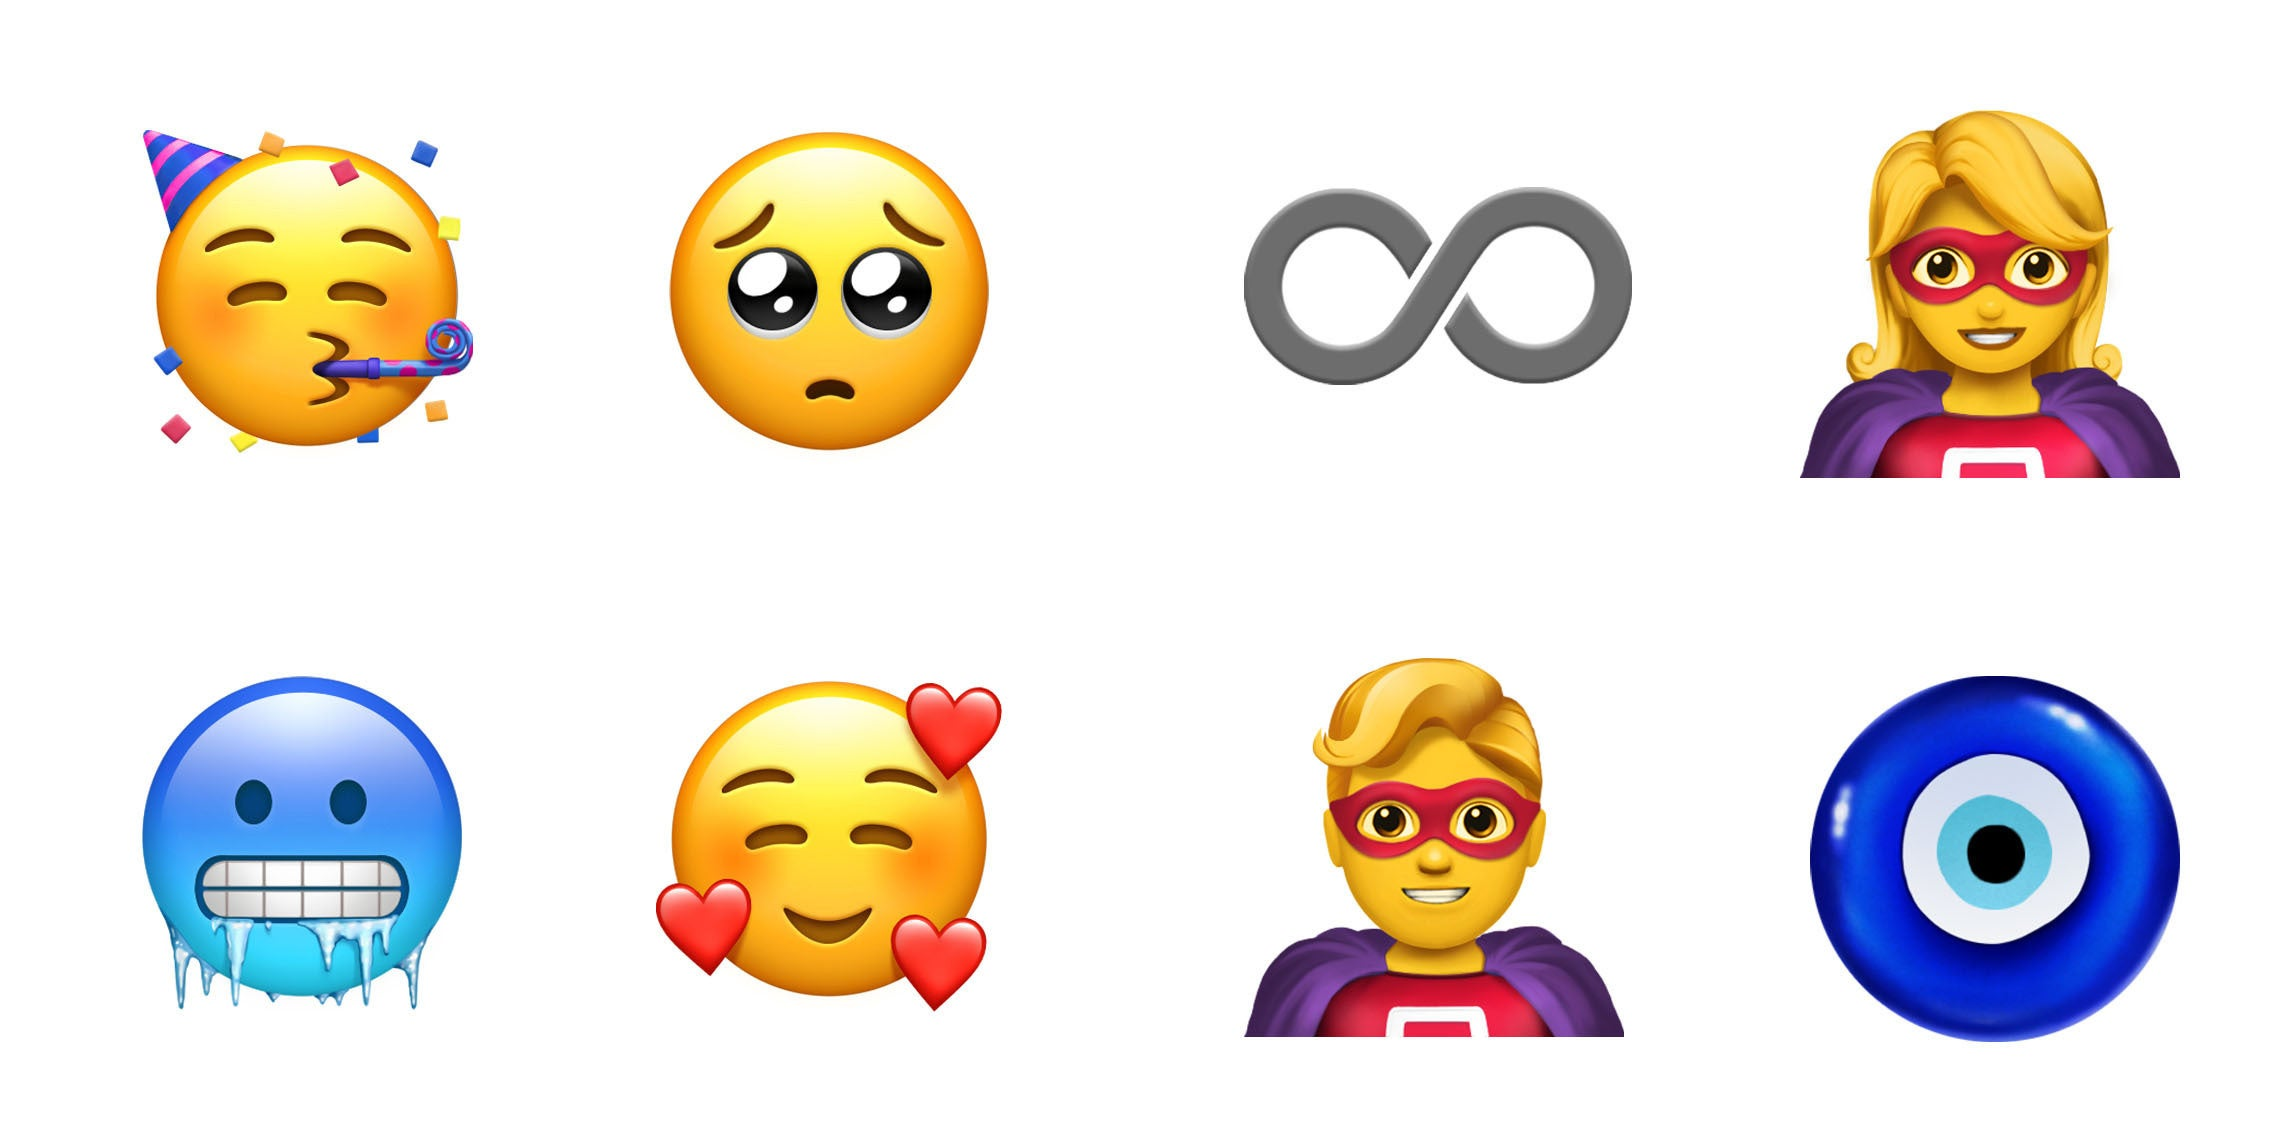 Apple highlights new emojis coming with iOS 12 and macOS Mojave to celebrate World Emoji Day ...